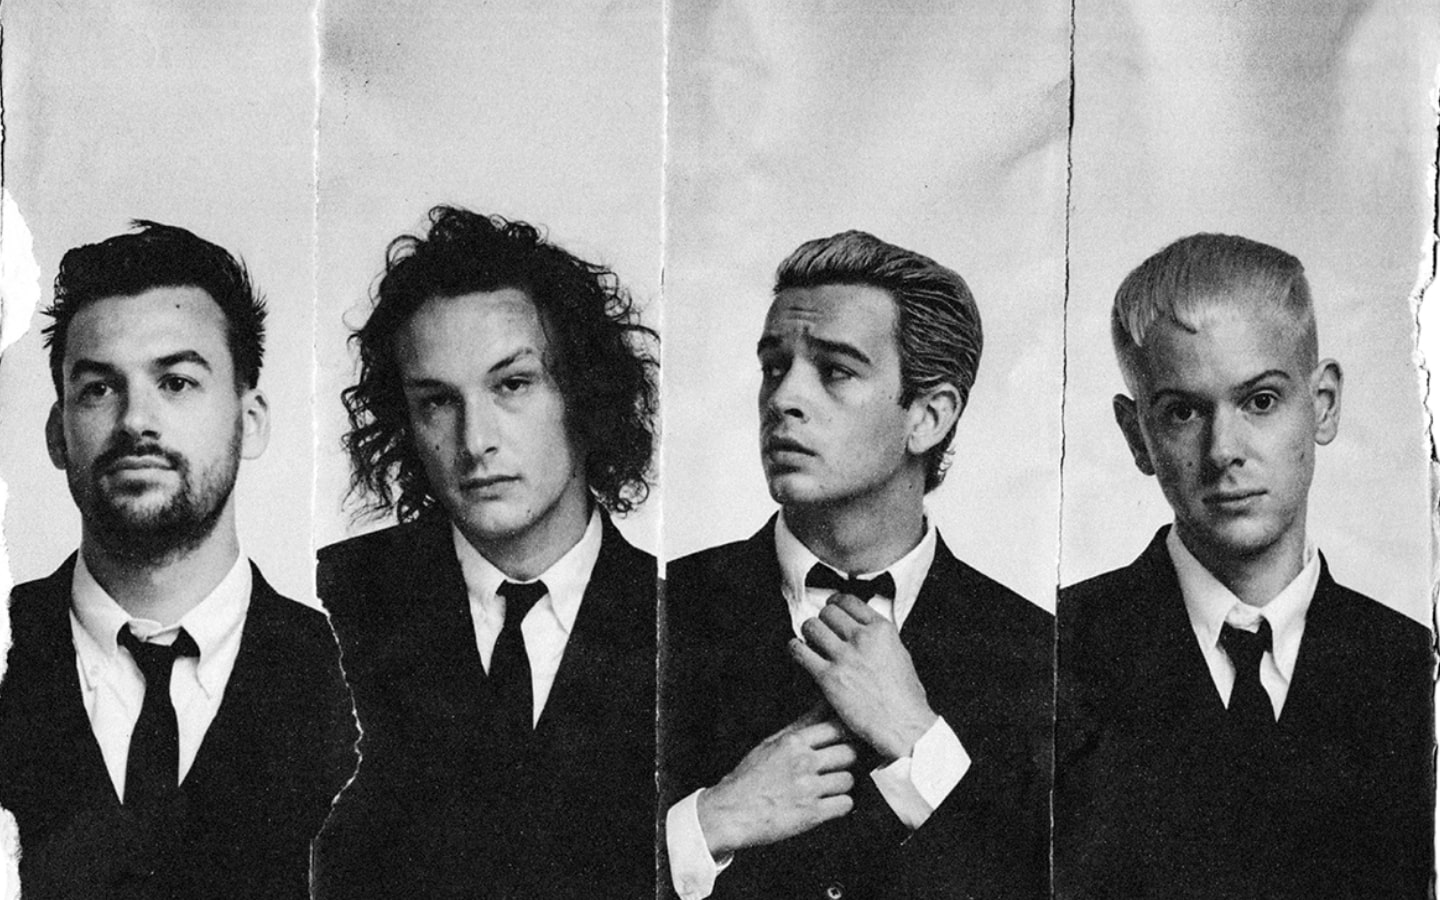 Poster showing the 1975 band members